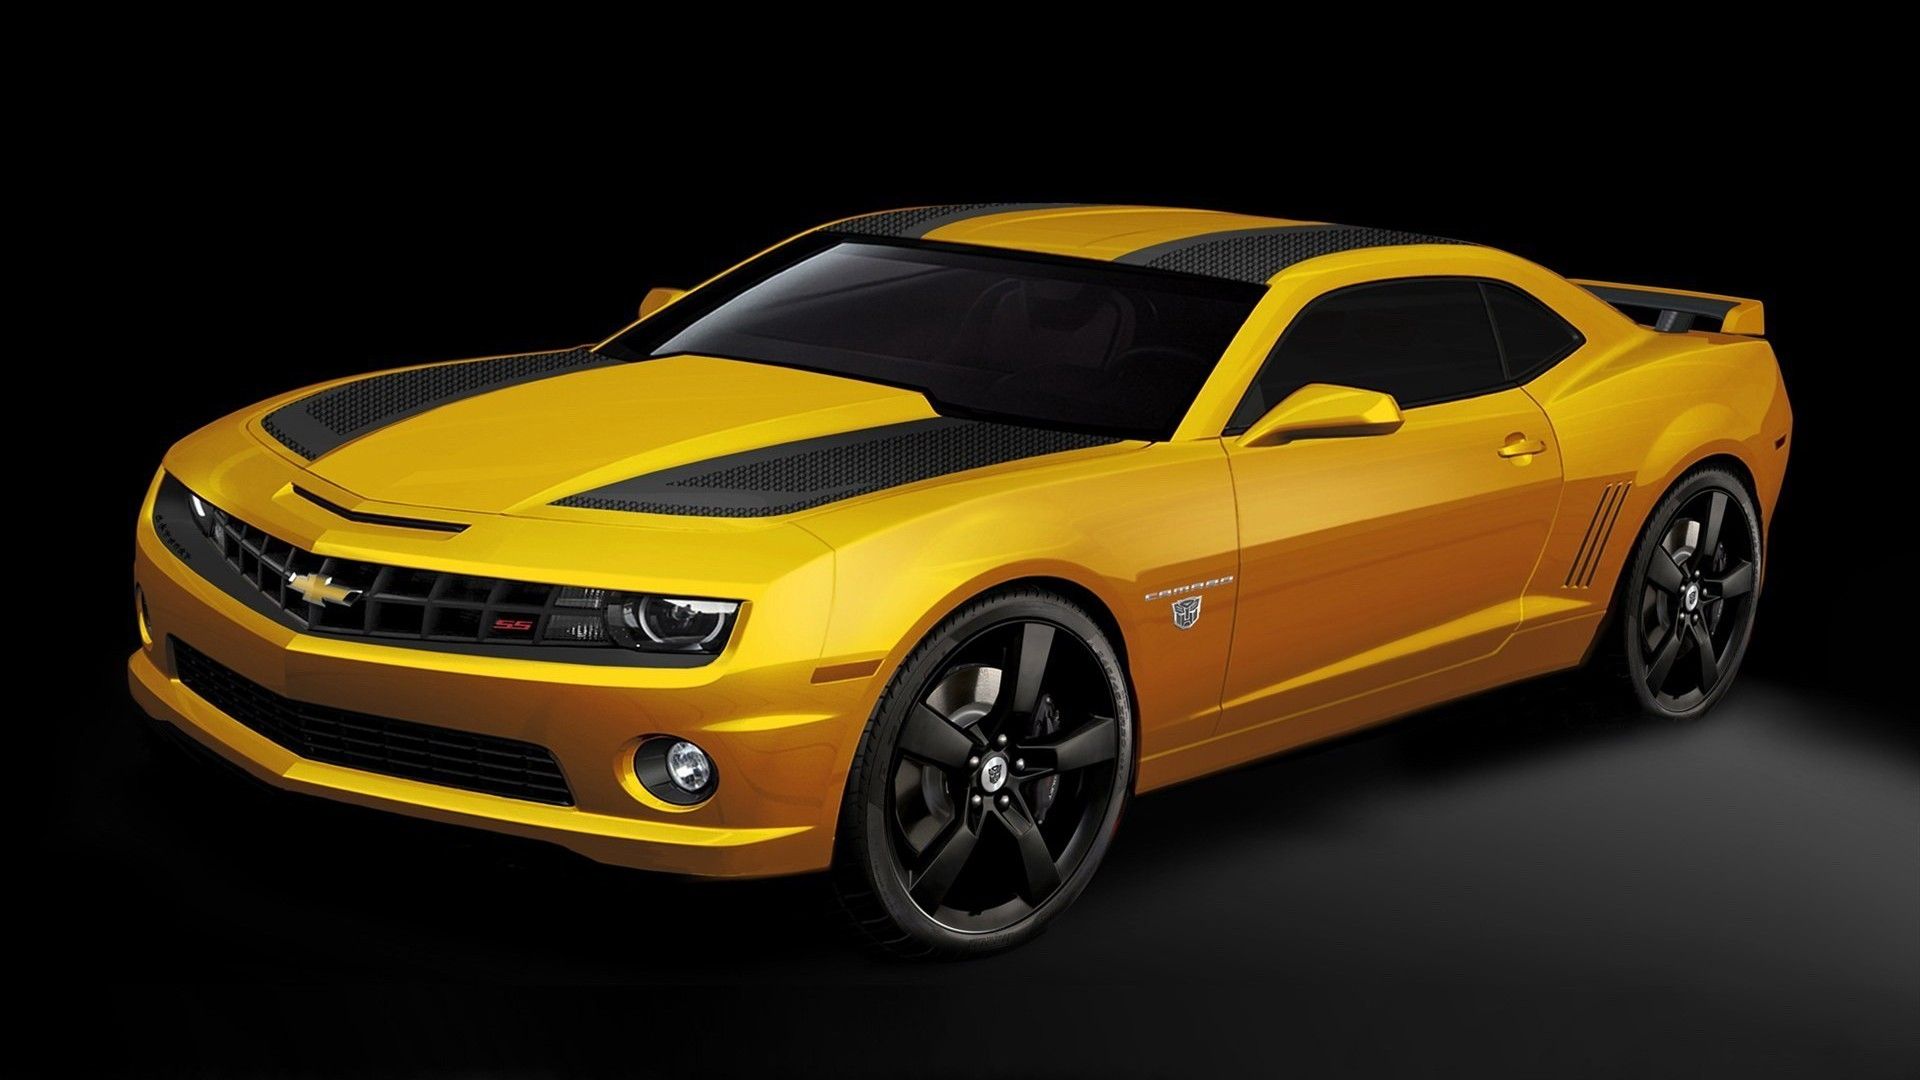 Bumblebee Chevrolet Camaro Ss Autos Wallpaper